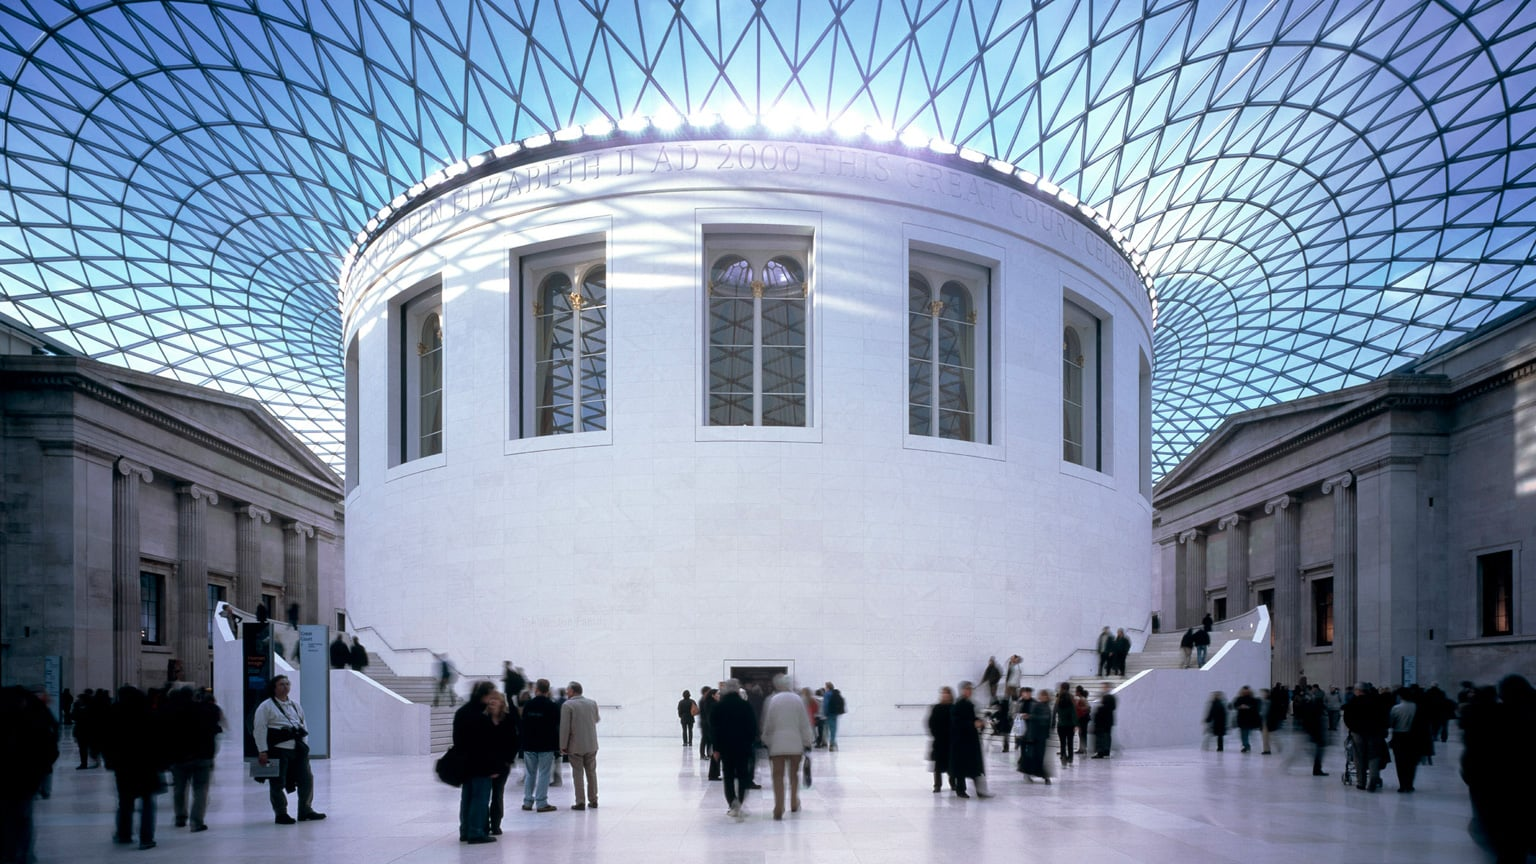 British Museum London, Top 10 London museums - London - Art Fund